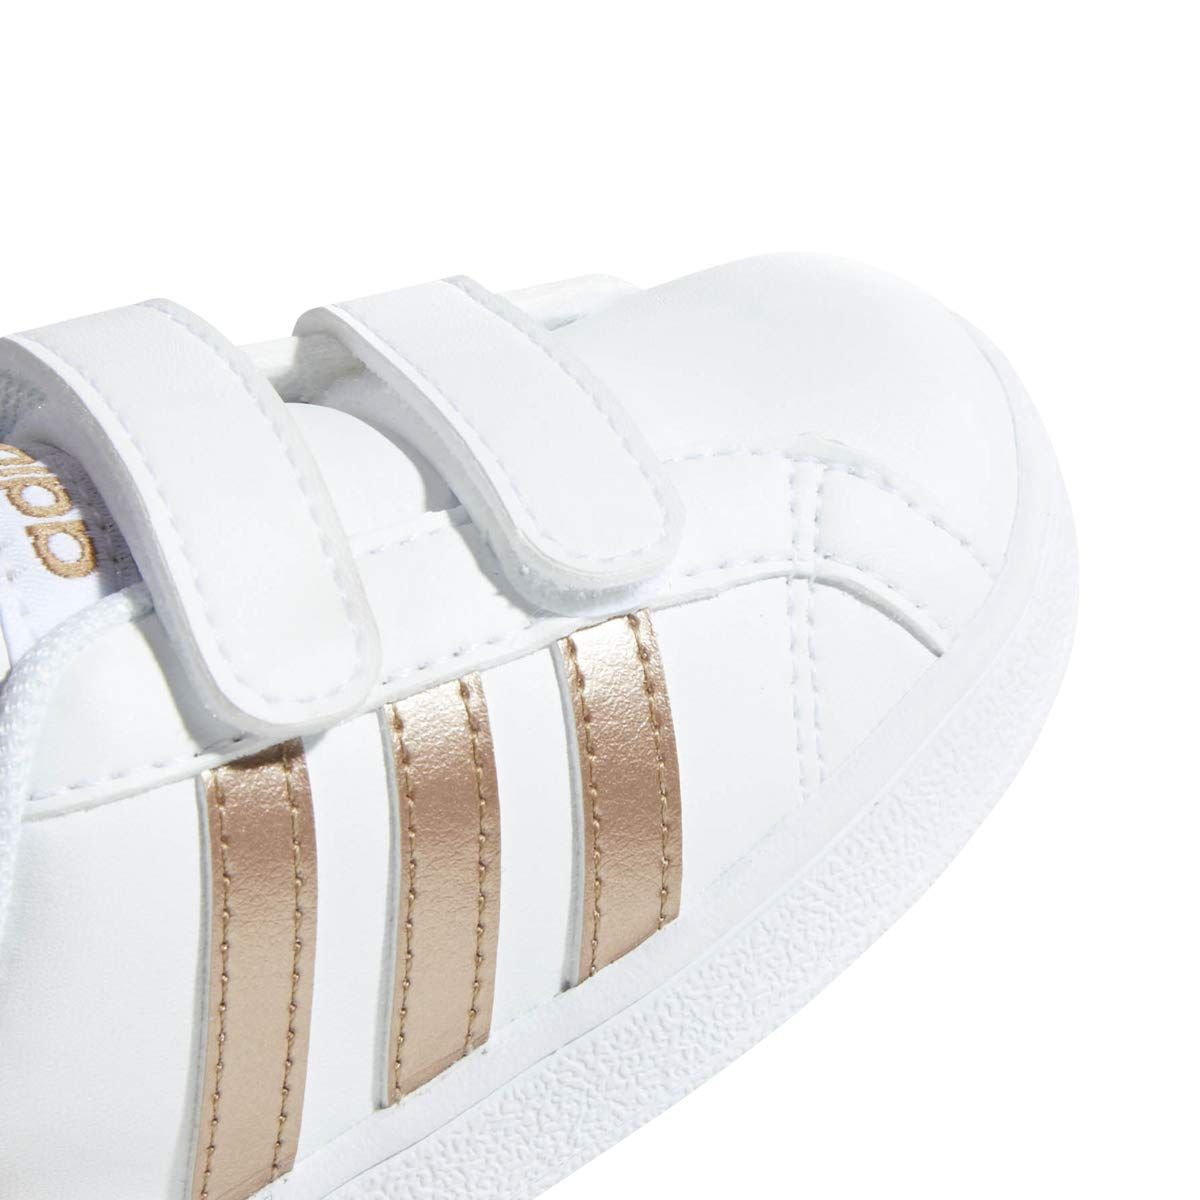 best website 90b7a d9e9e adidas Performance Baby Baseline White Copper Metallic Black 6K M US  Toddler   You could obtain more information by clicking the image.